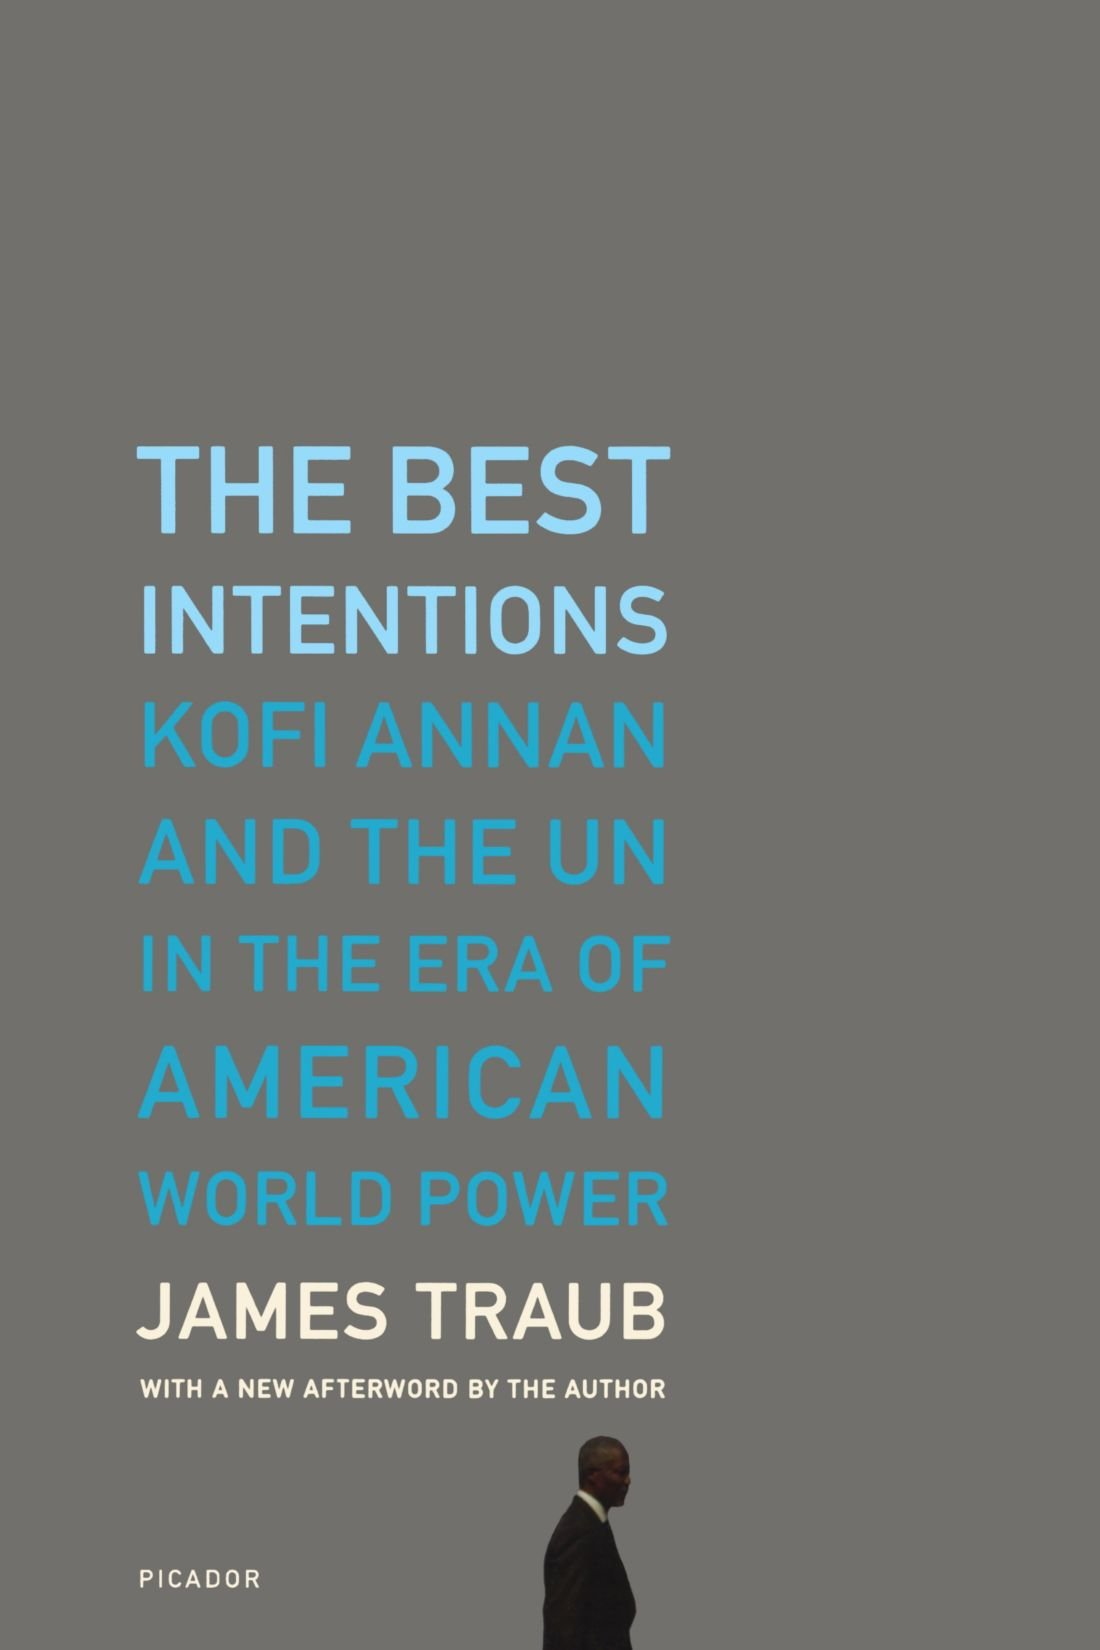 The Best Intentions: Kofi Annan and the UN in the Era of American ...